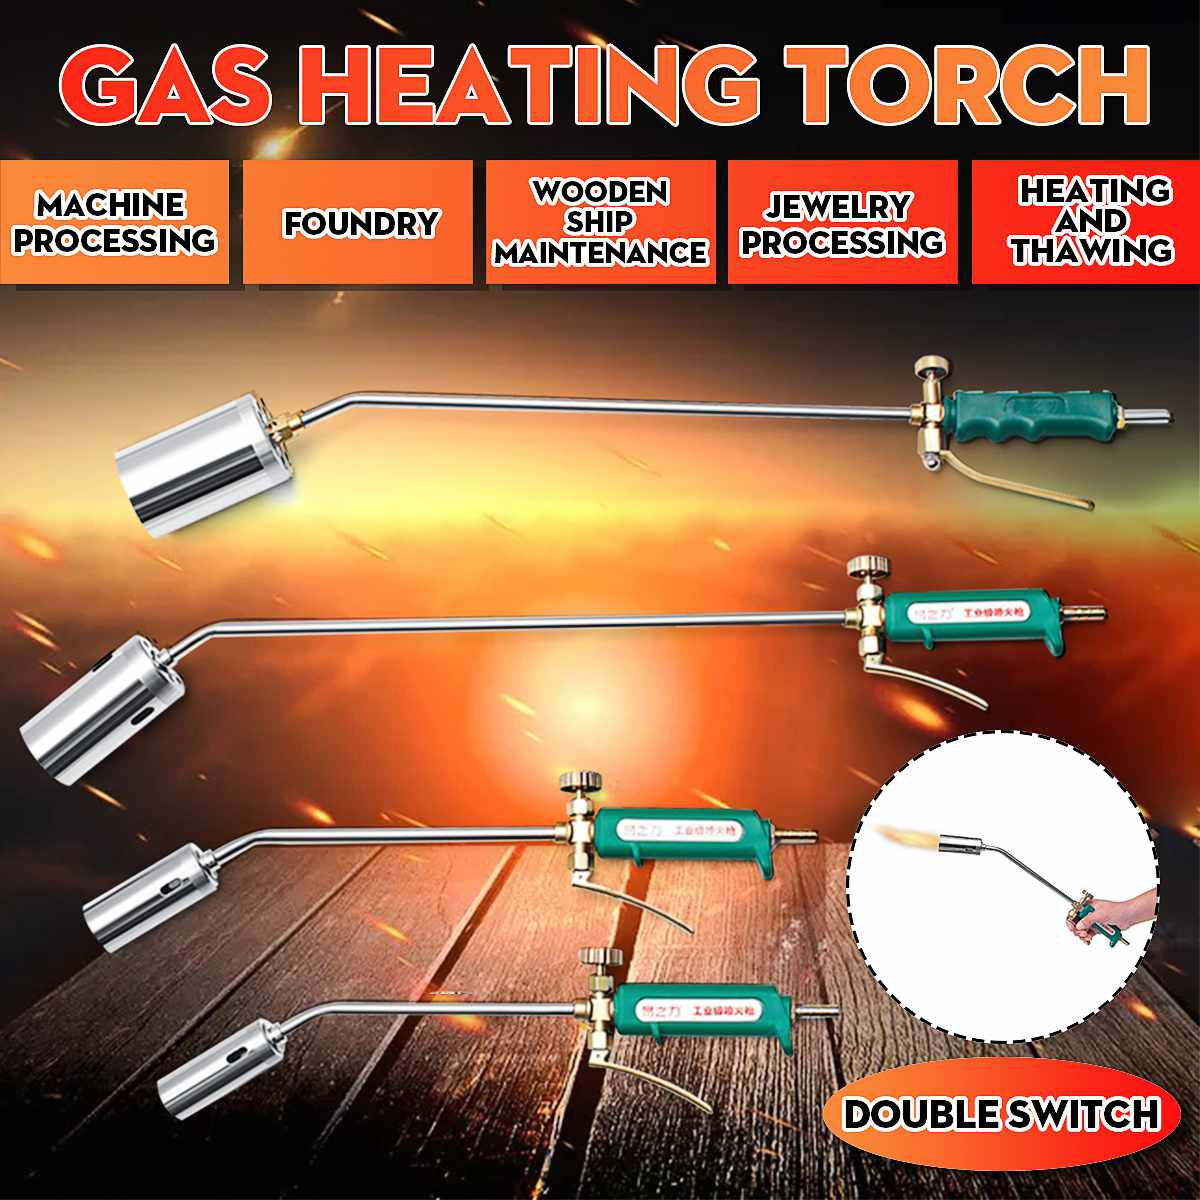 Stainless Steel Gas Heating Torch Liquefied Gas Welding Torch Road Pipe Metal Heating Guns Plumber Ignition Soldering Machine